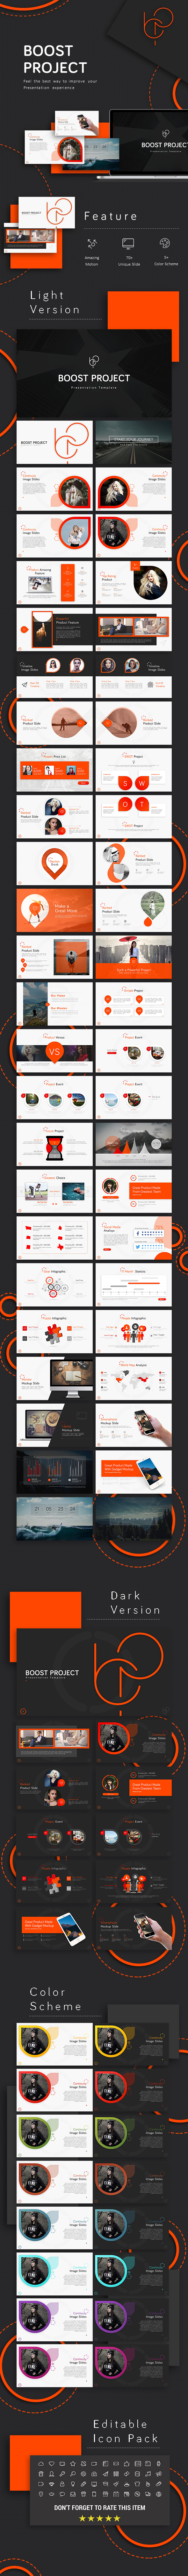 Boost Project Powerpoint Template - Business PowerPoint Templates